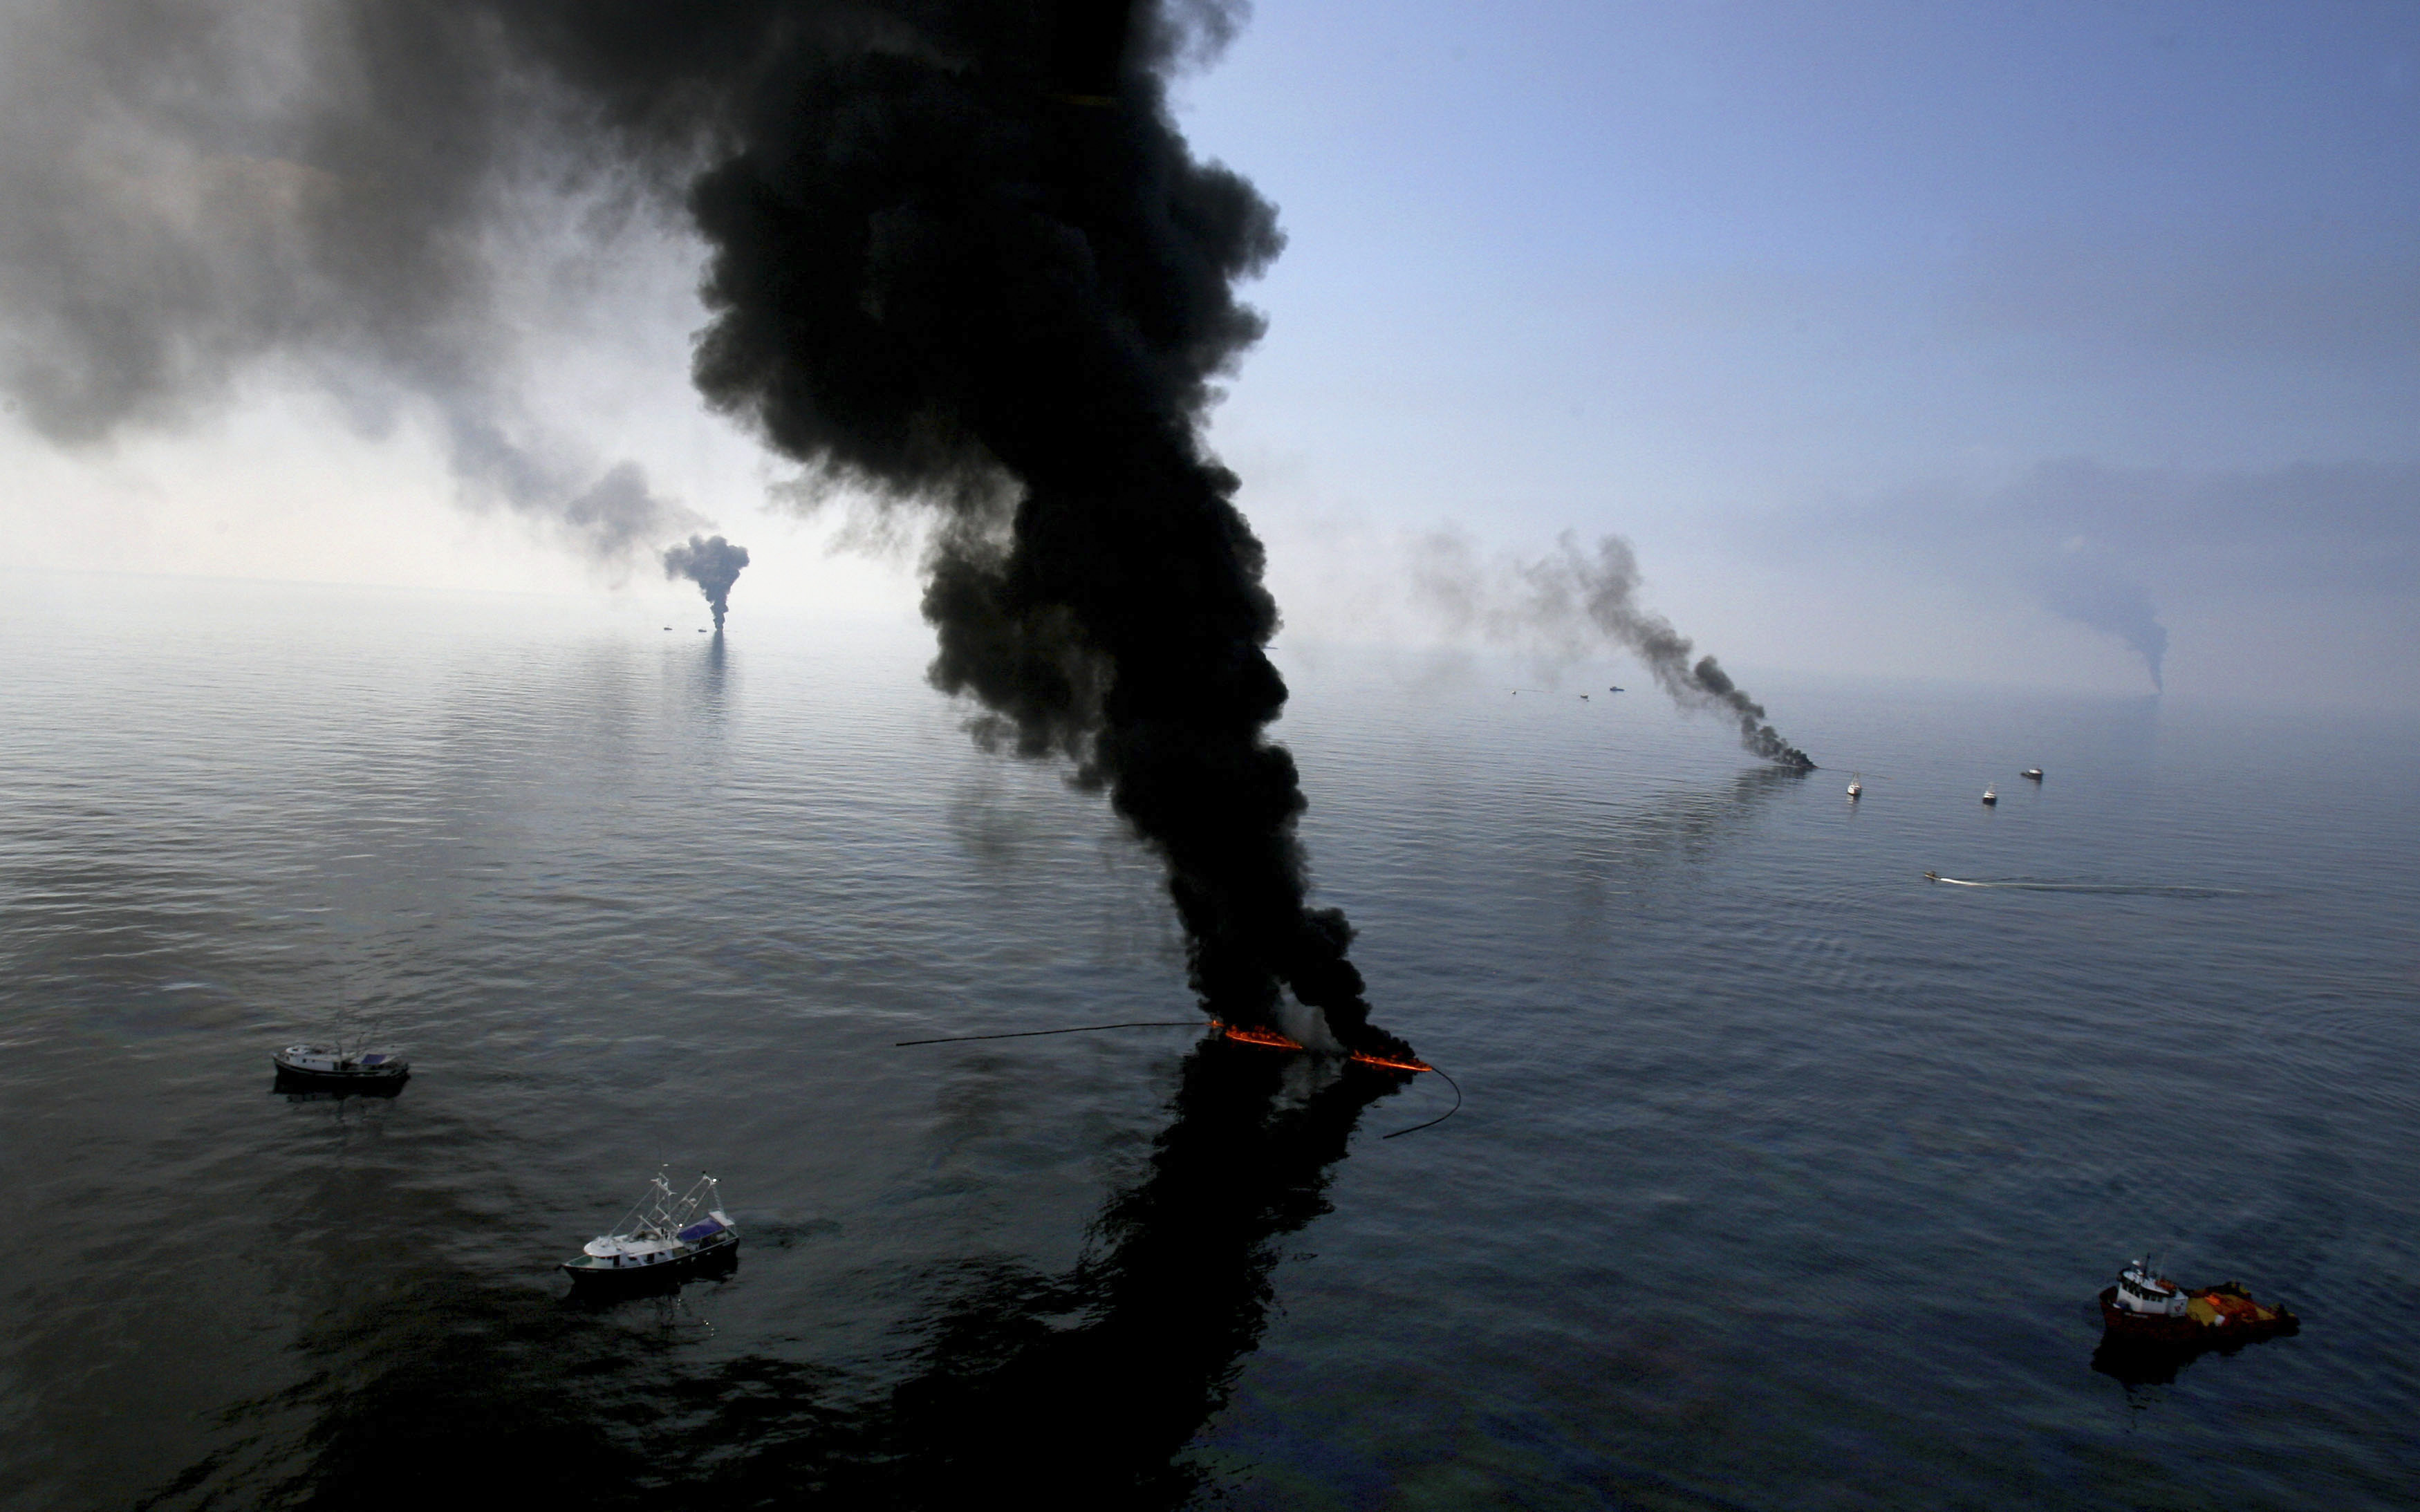 bp and oil spill Five years after the worst offshore oil spill in us history, louisiana residents say they're still feeling the economic effects.